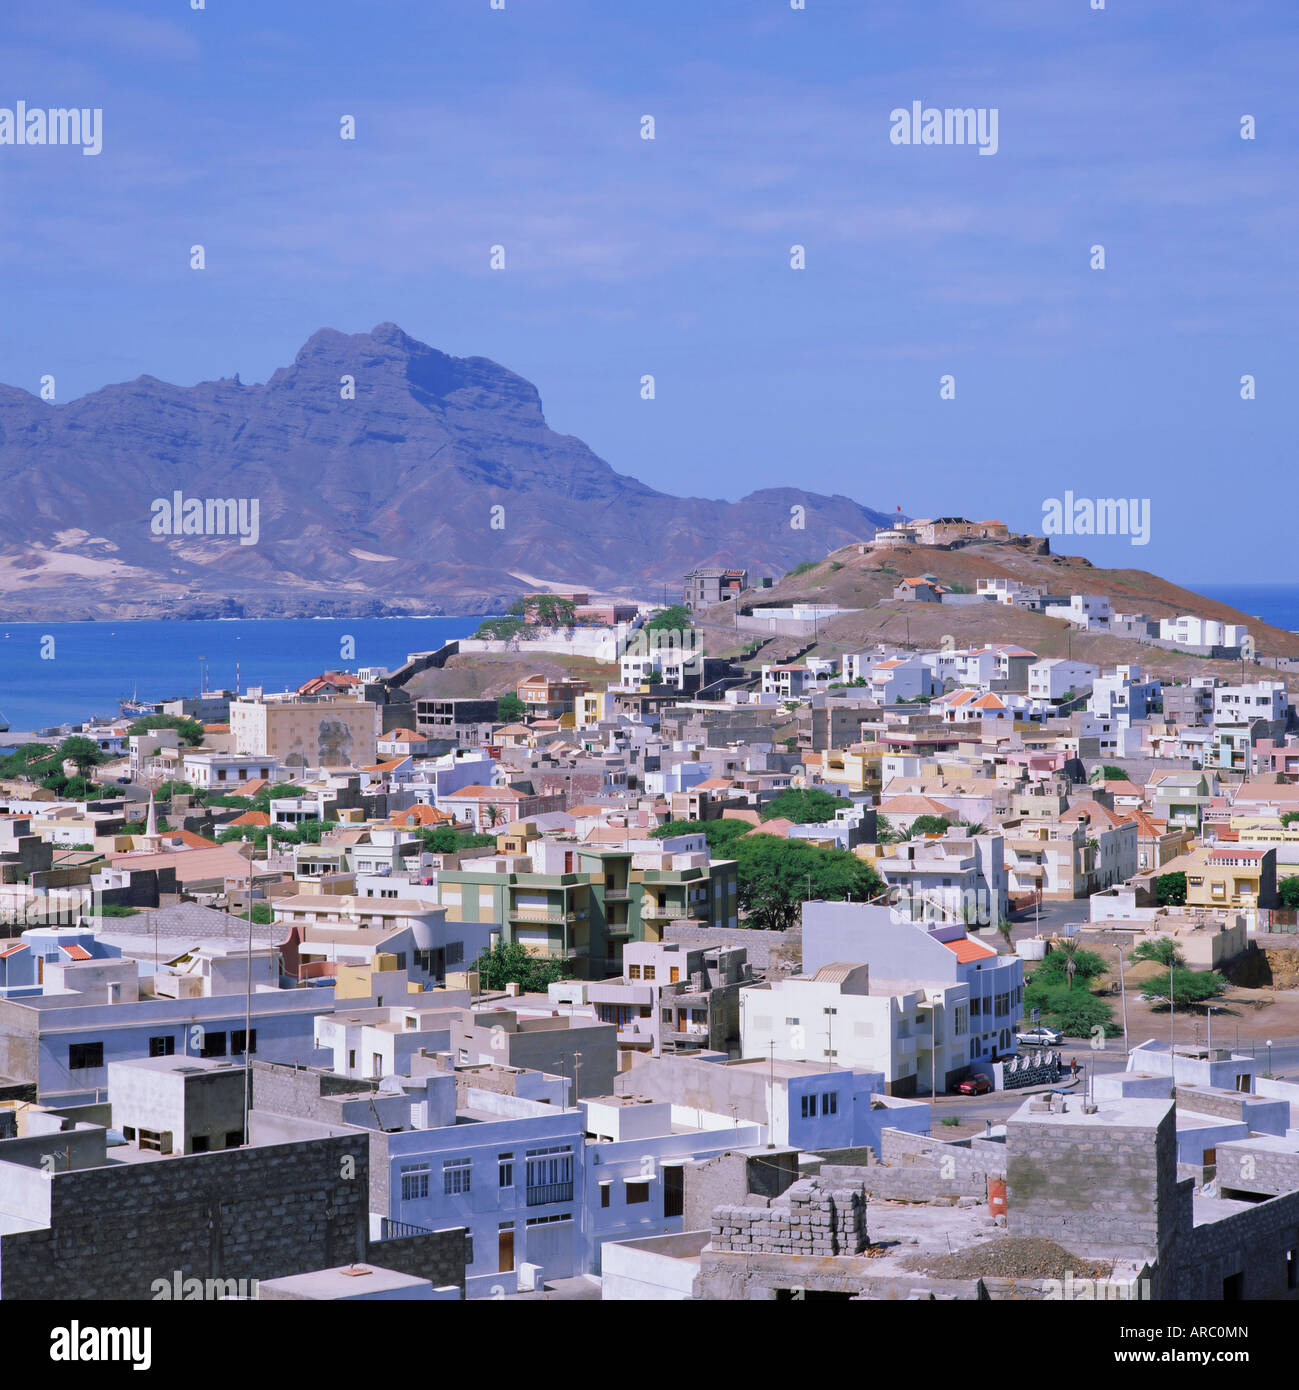 The main port of Mindelo on the island of Sao Vicente, Cape Verde Islands Stock Photo